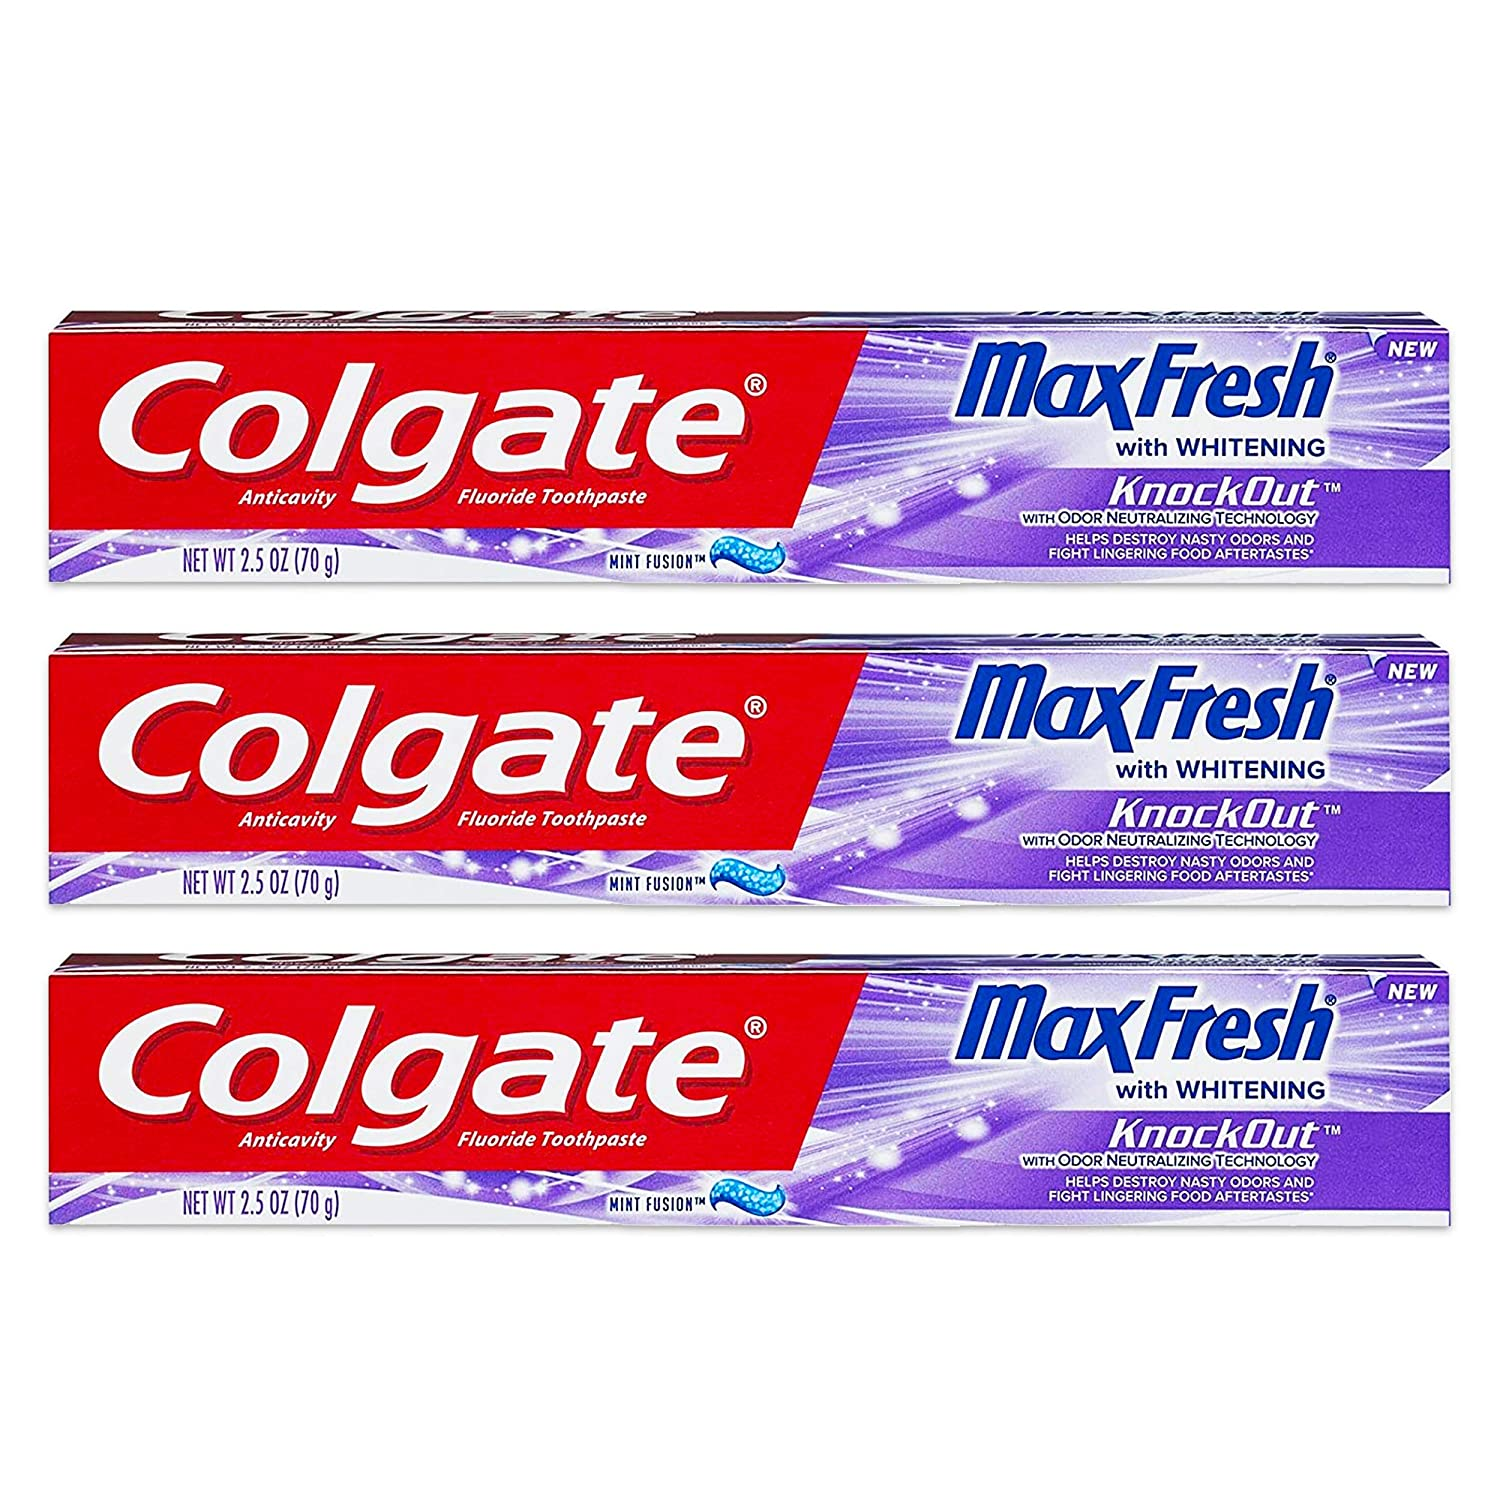 Colgate Max Fresh Knockout Gel Toothpaste, 2.5 Ounce Pack Of 3